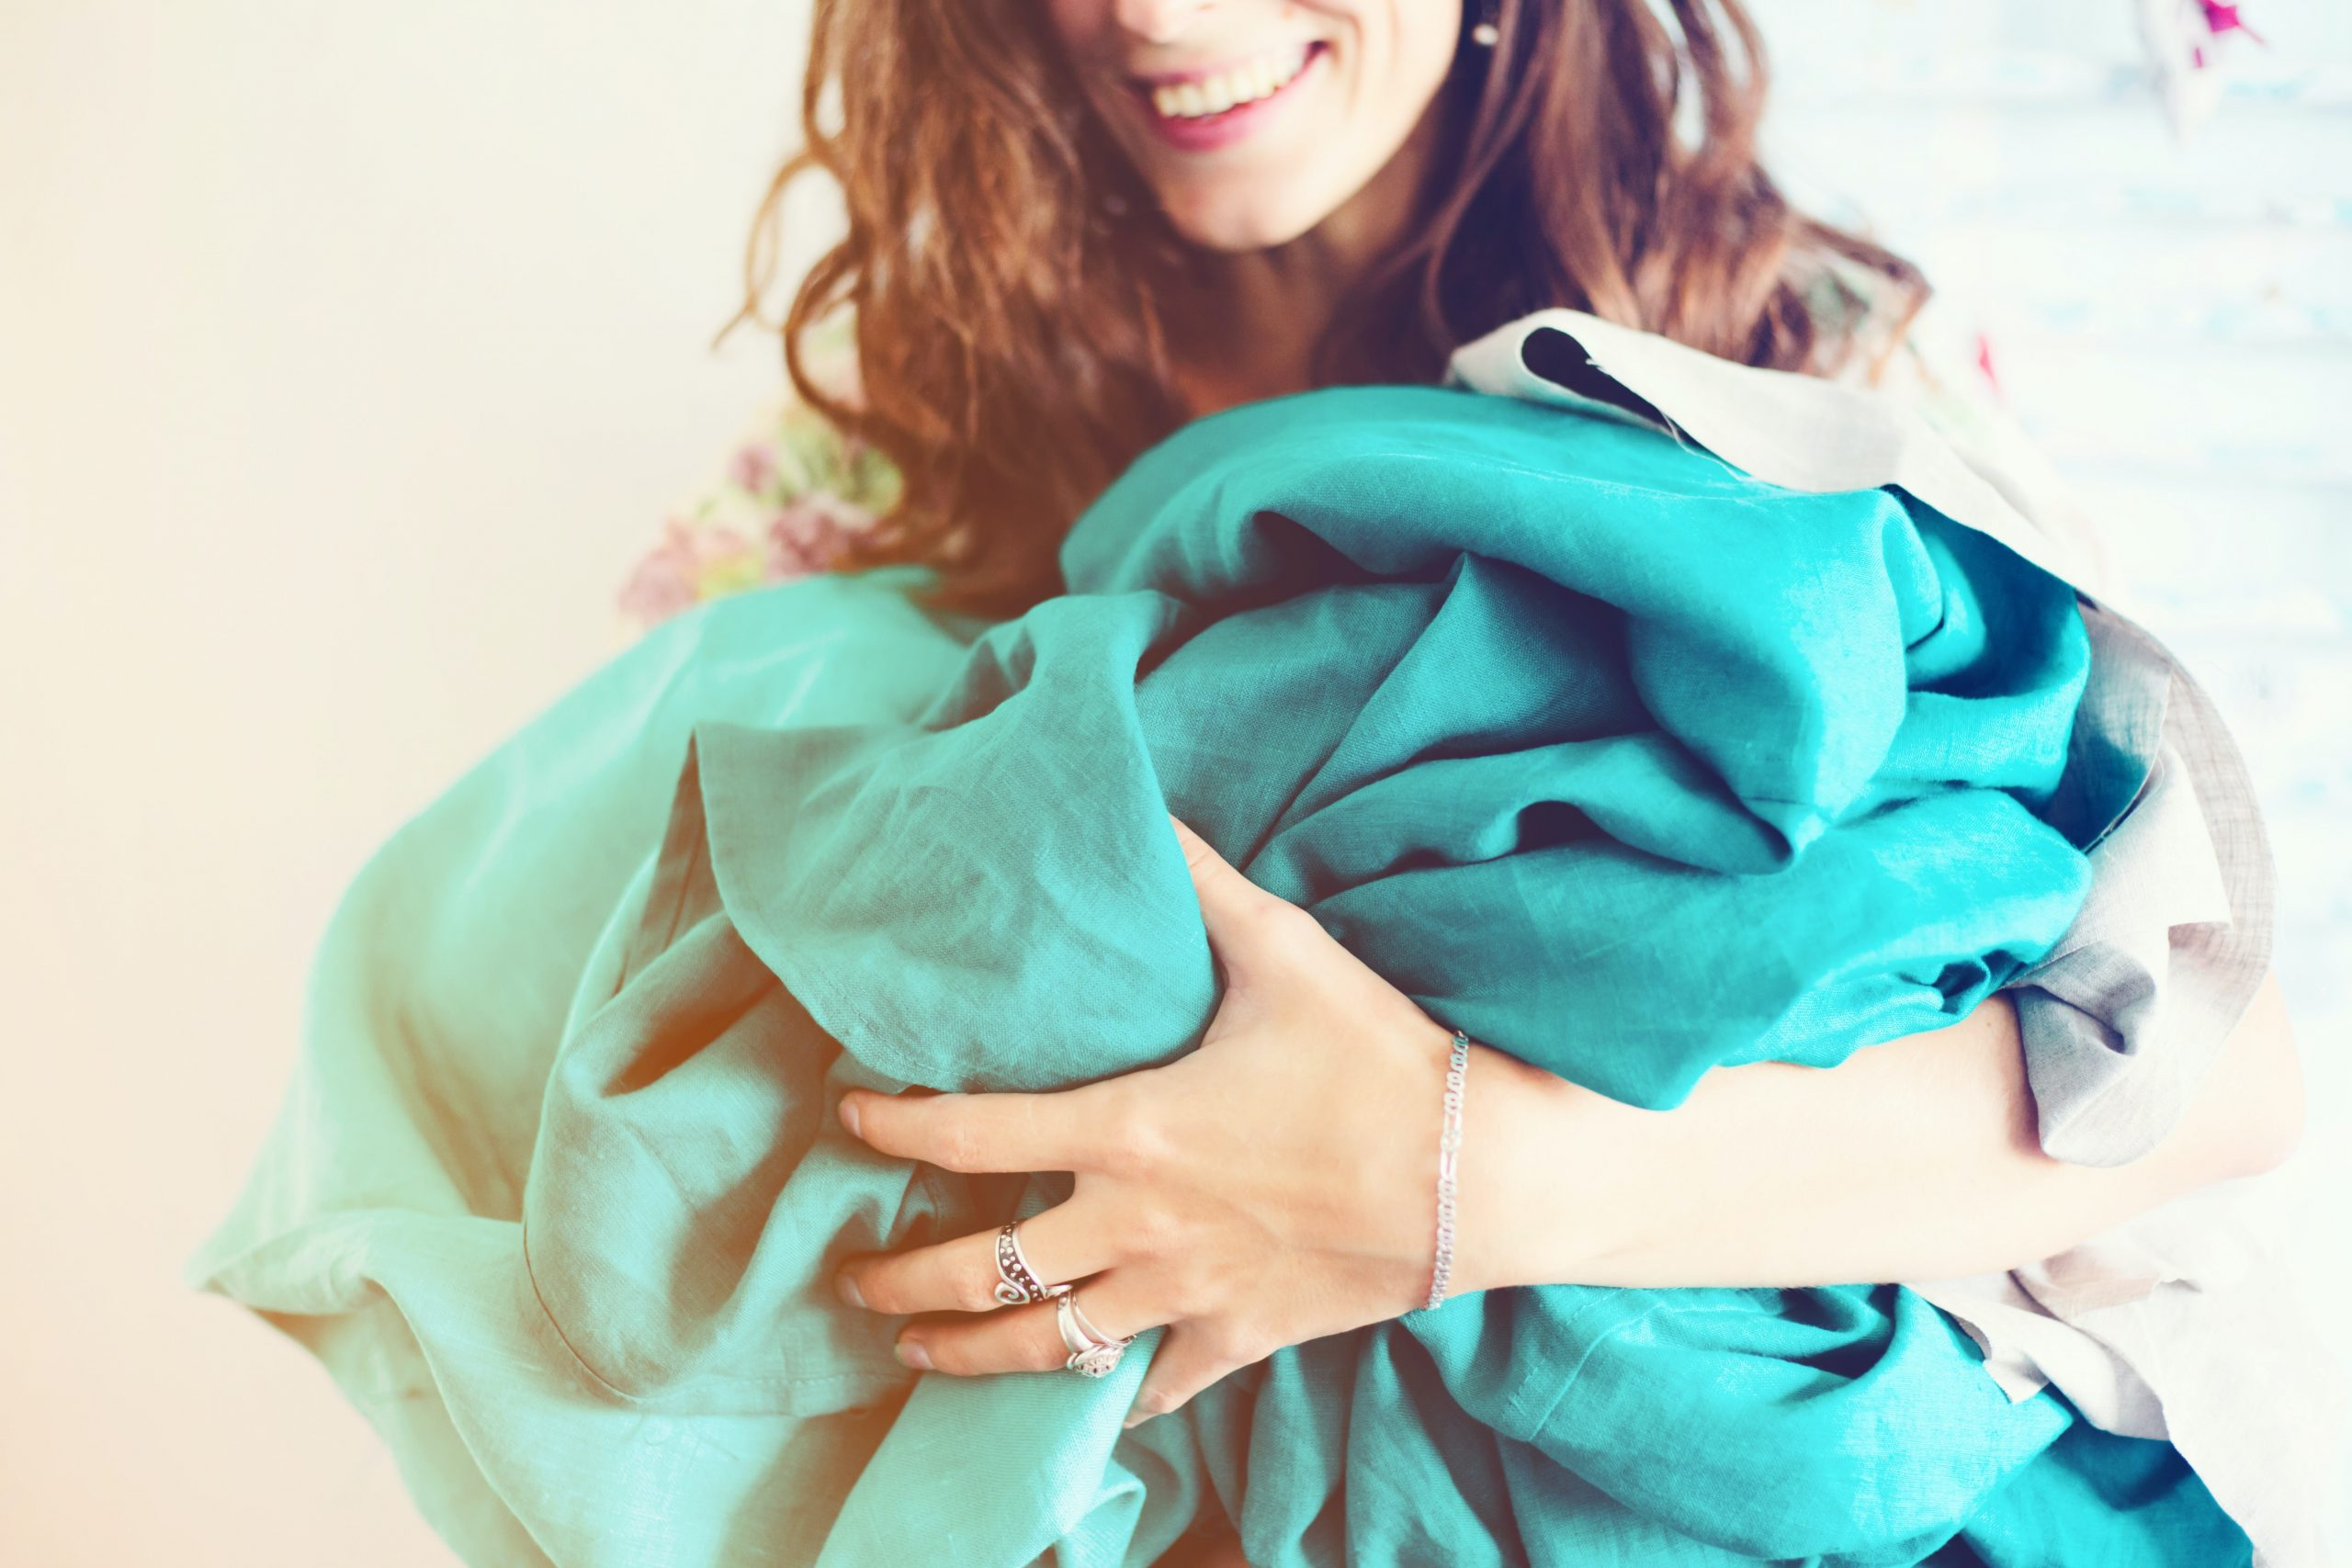 woman holding crumpled up sheets and blankets